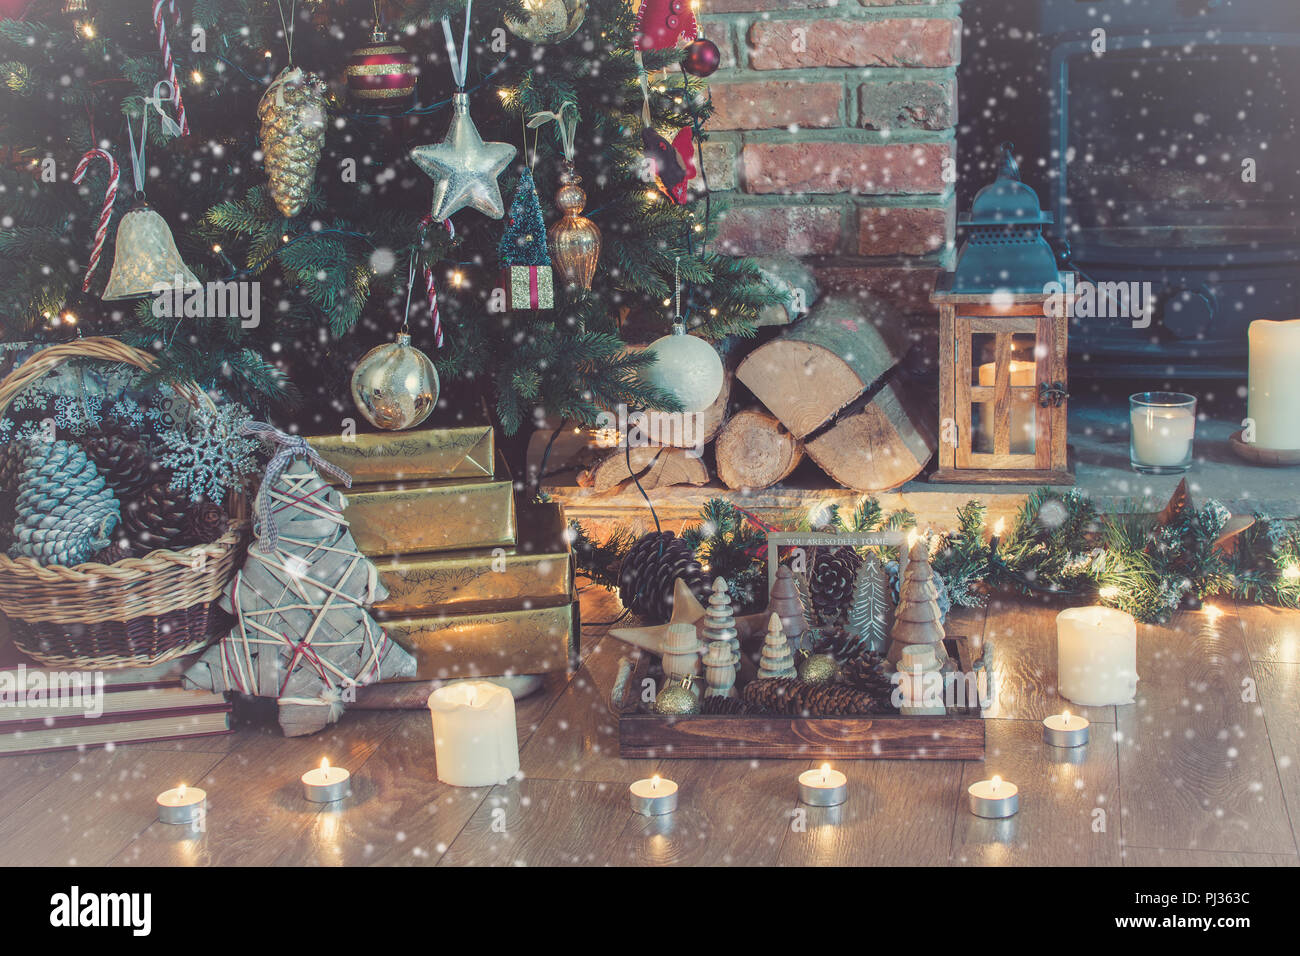 decorated fireplace with woodburner lit up christmas tree with baubles and ornaments lantern stars and garlands with drawn snow over the photo se